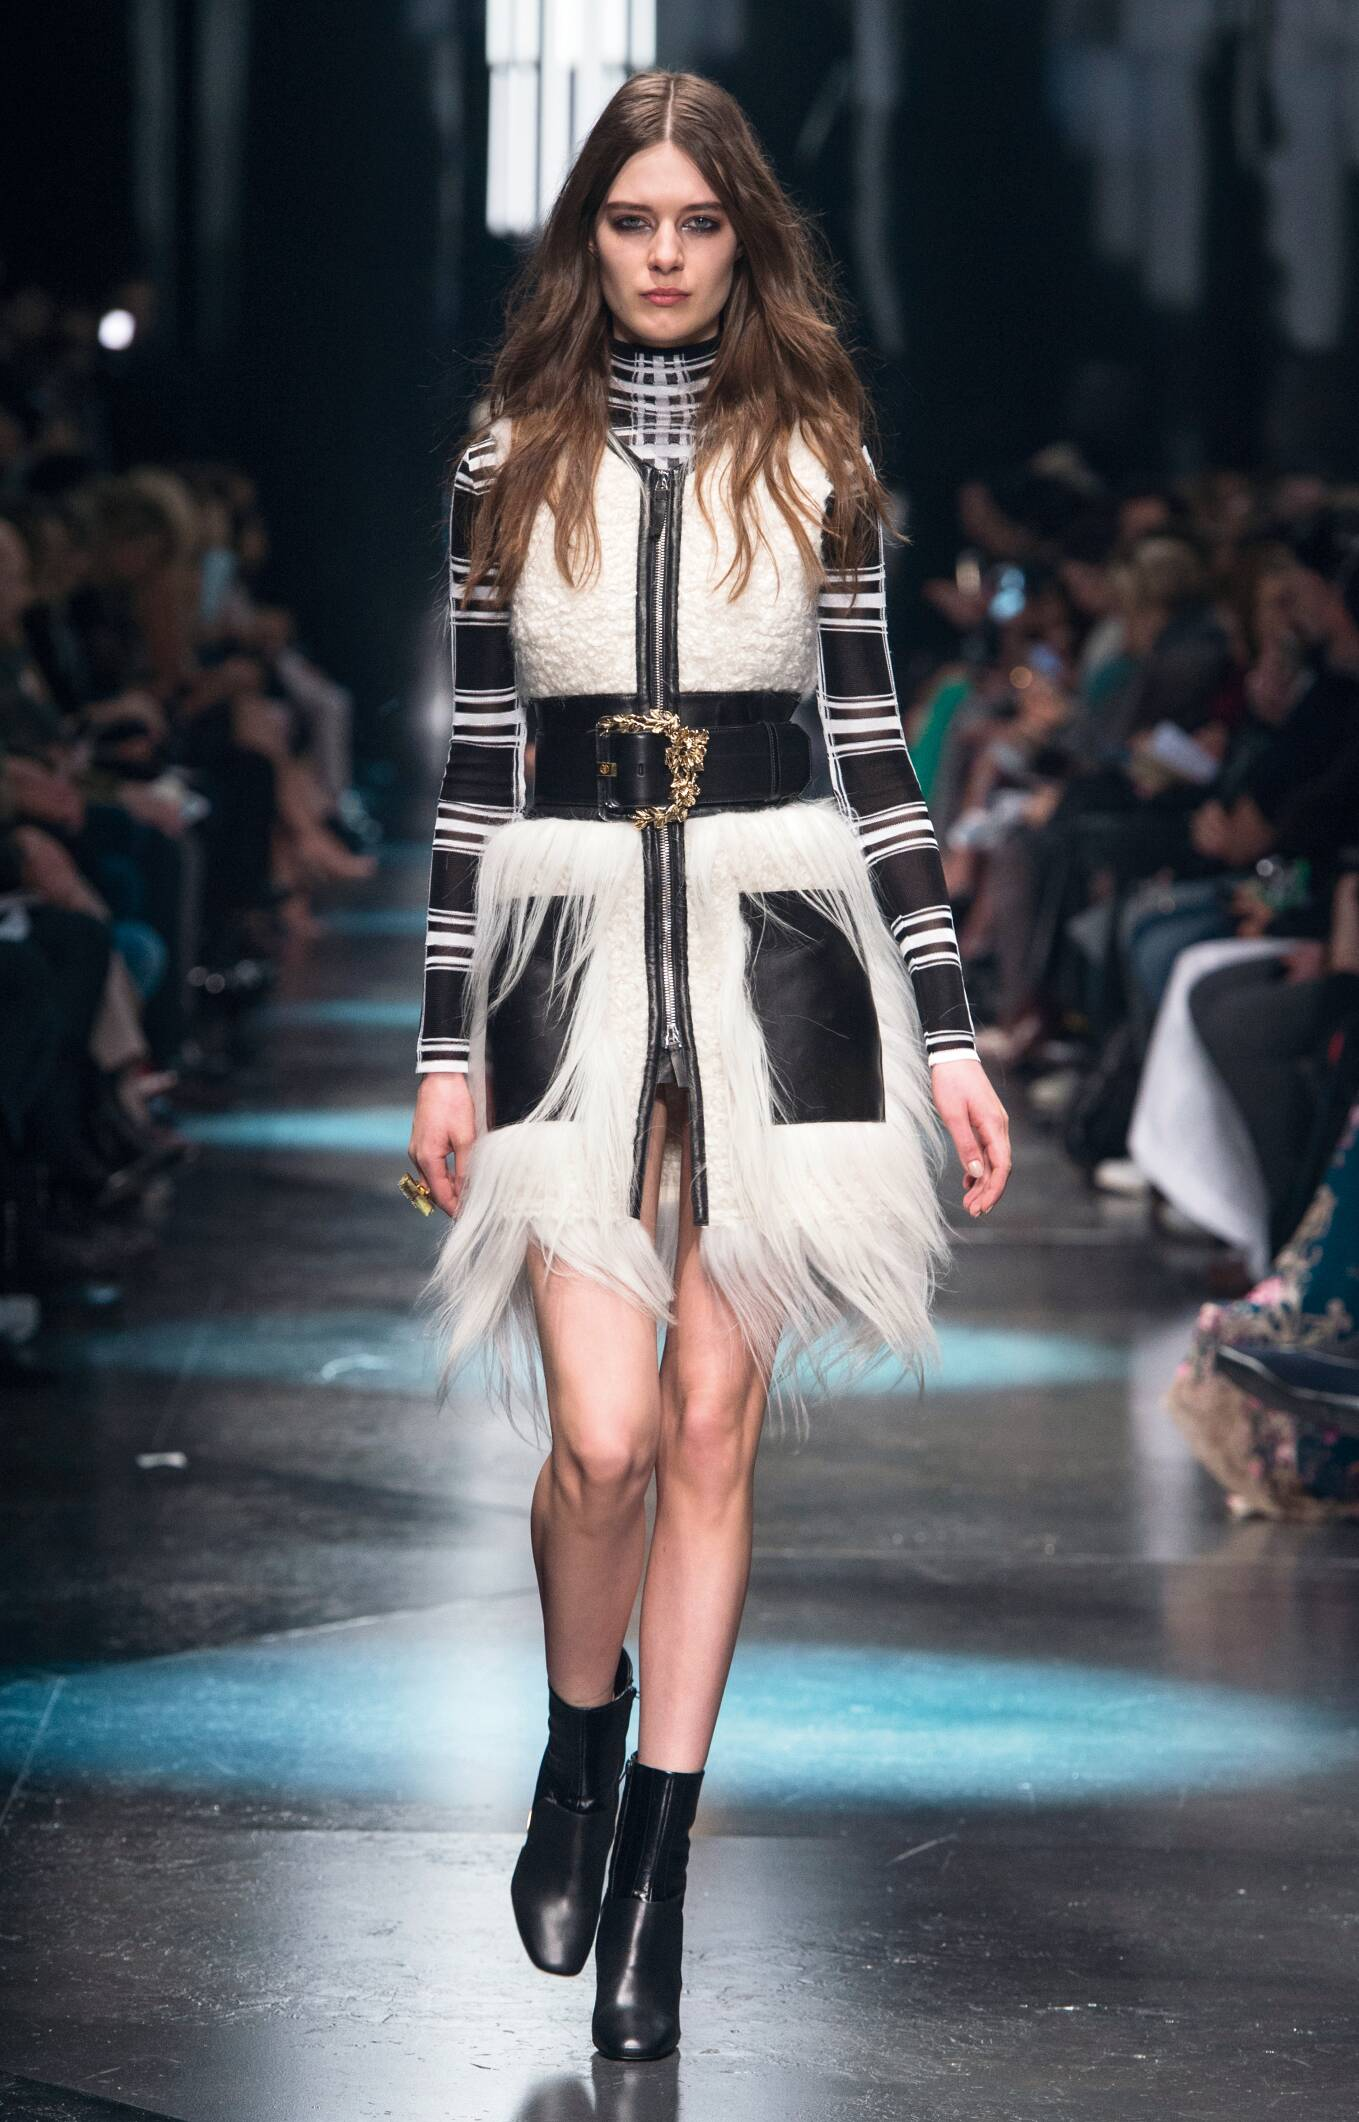 Catwalk Roberto Cavalli Collection Fashion Show Winter 2015